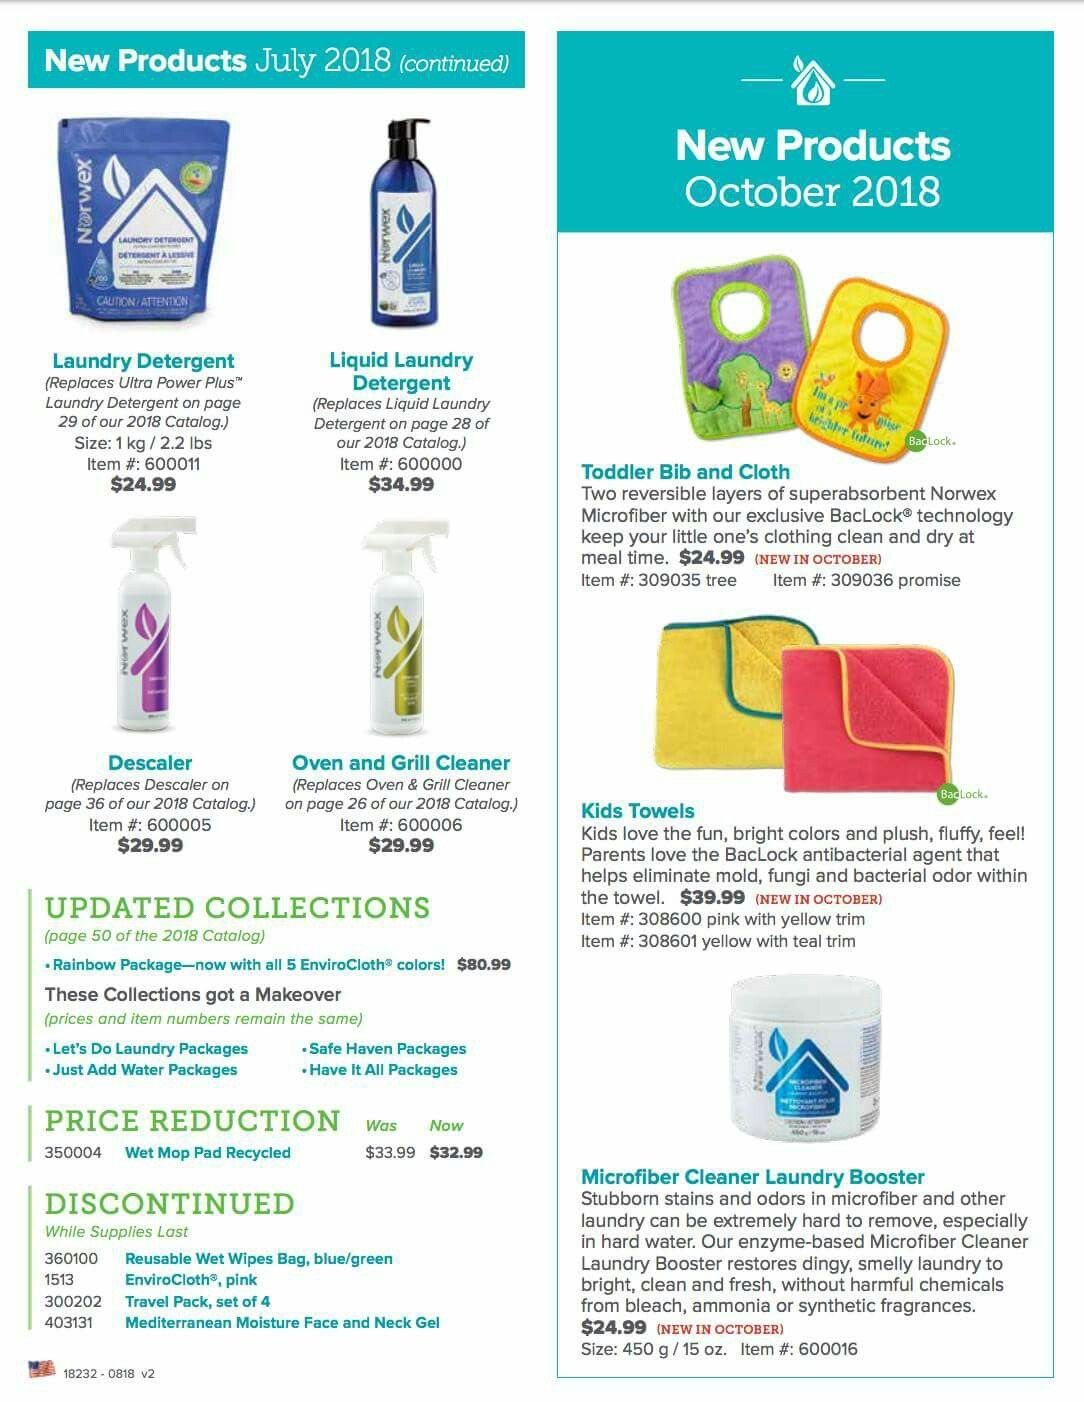 Pin By Samantha Henderson On Norwex Norwex Microfiber Laundry